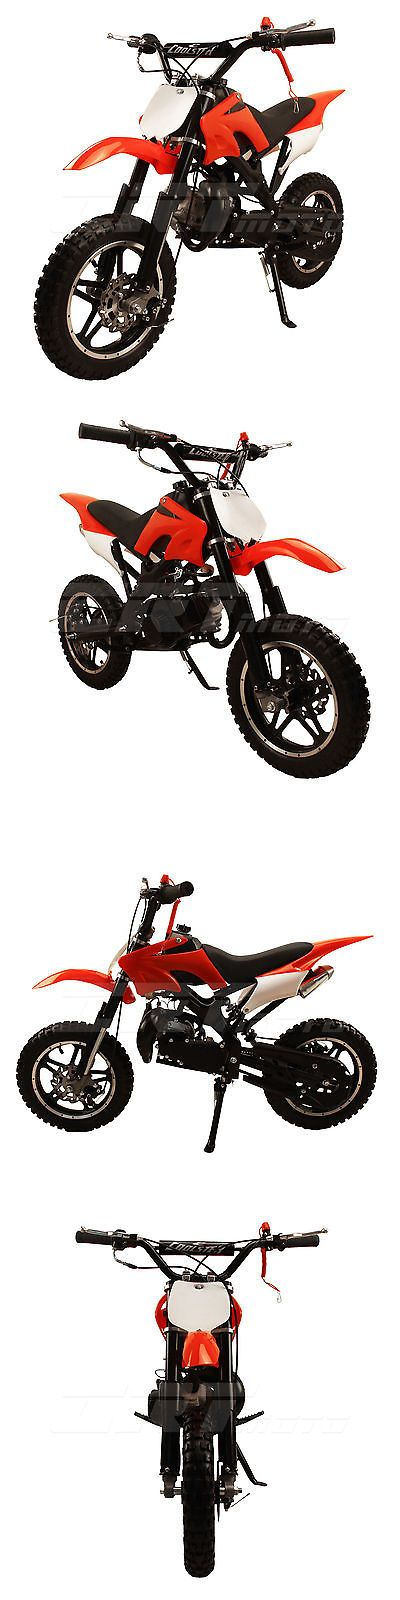 Other Scooters 11329: Coolster Qg-50X Red 50Cc Fully Auto Mini 2-Stroke Pull Start Kids Dirt Bike -> BUY IT NOW ONLY: $599.99 on eBay!